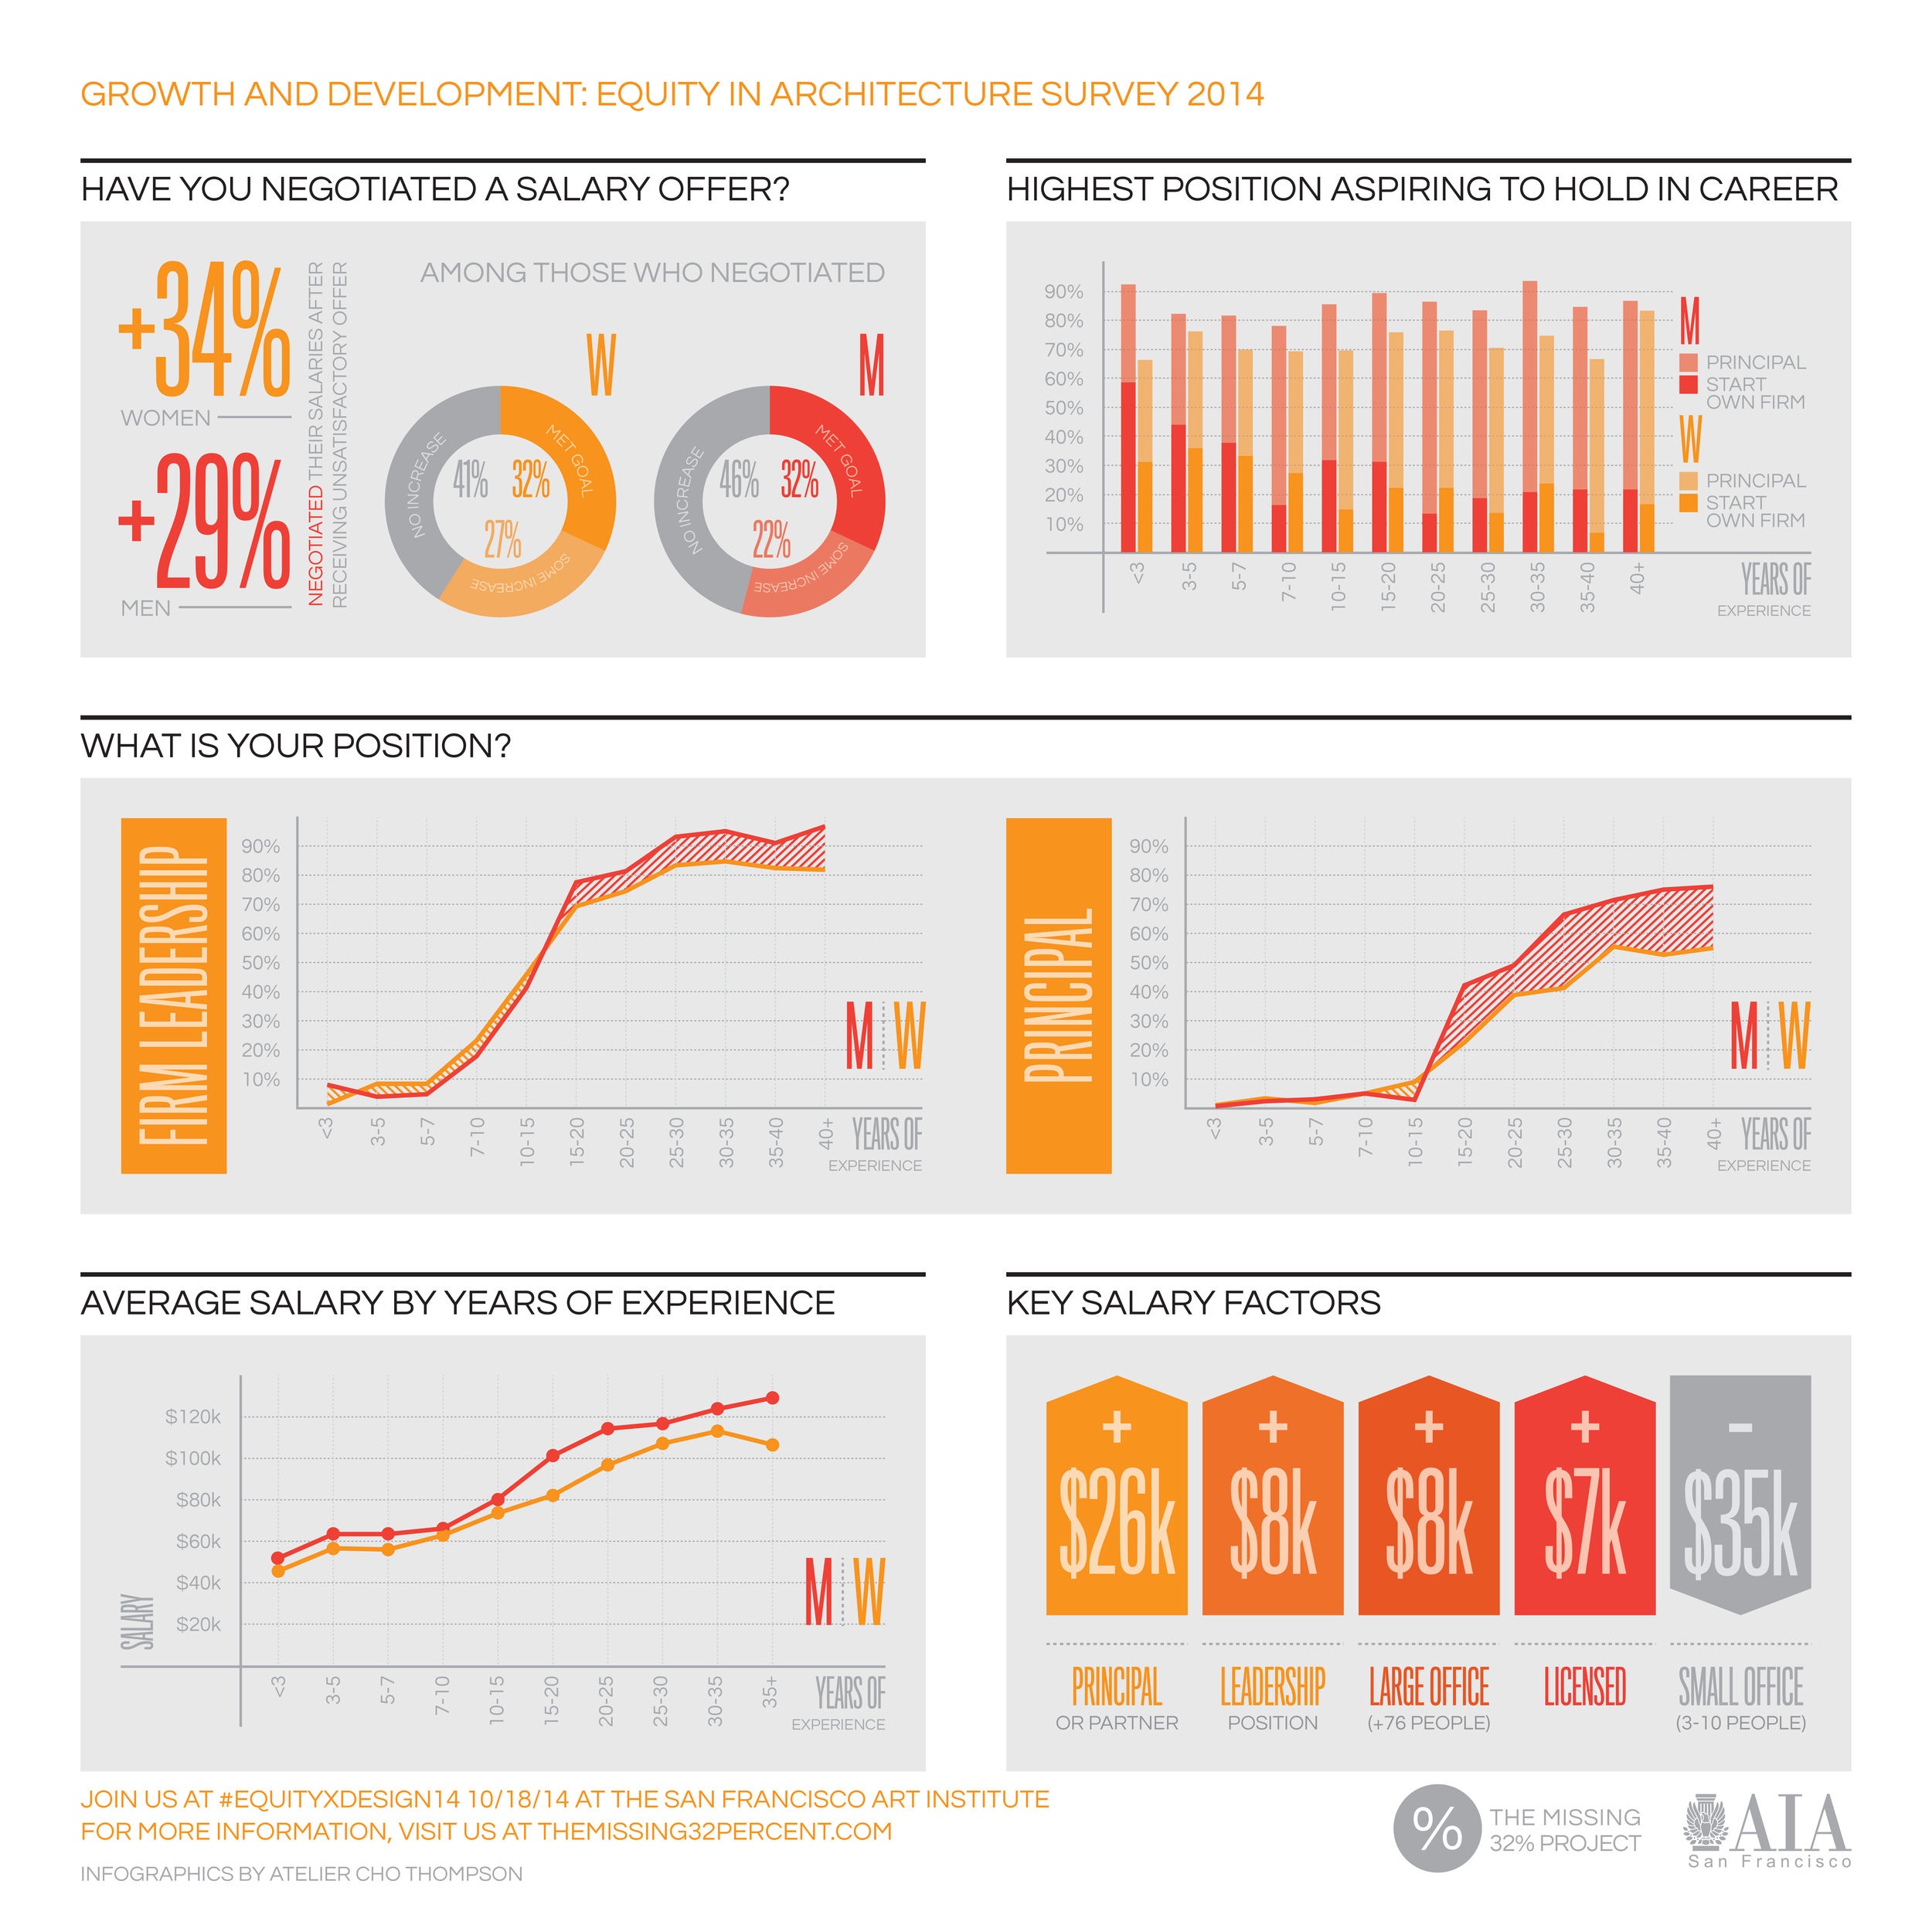 14_1015 Final Approved Infographics Boards UPDATED-5.jpg